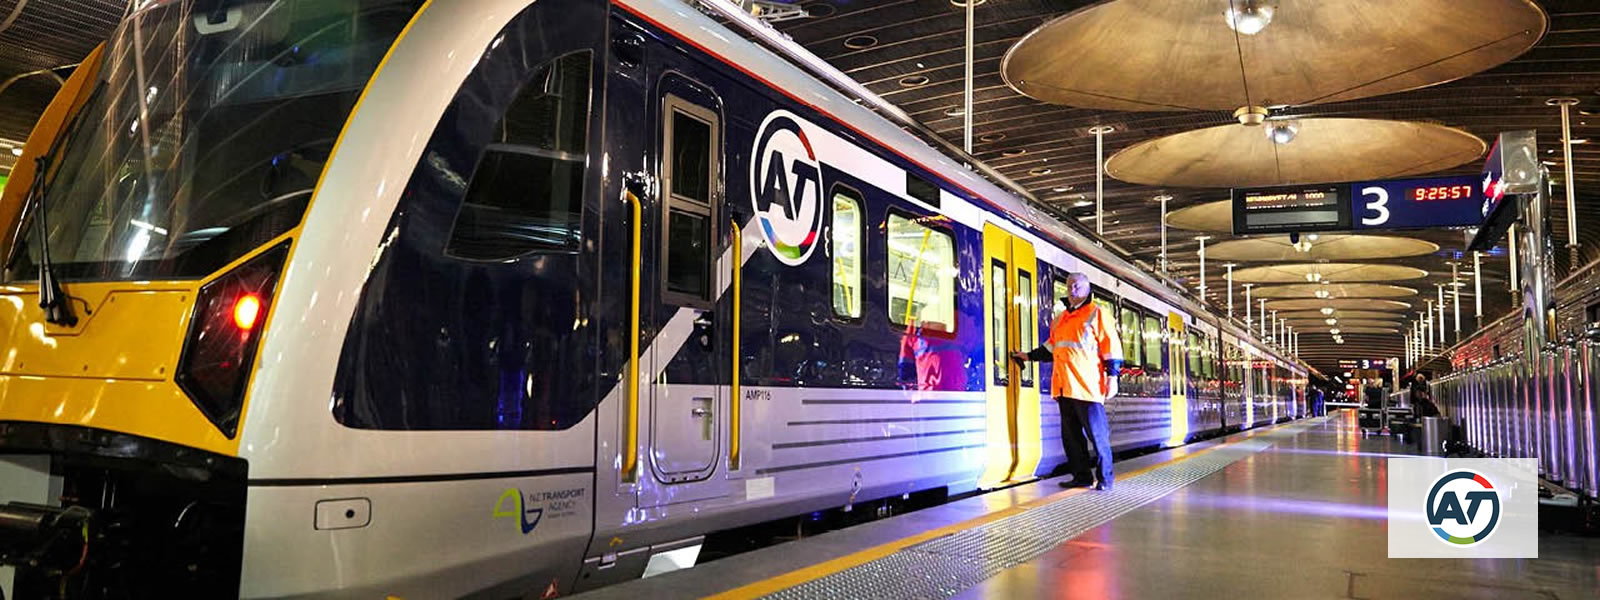 lightrail cars inside a terminal with Auckland Transport logo overlay